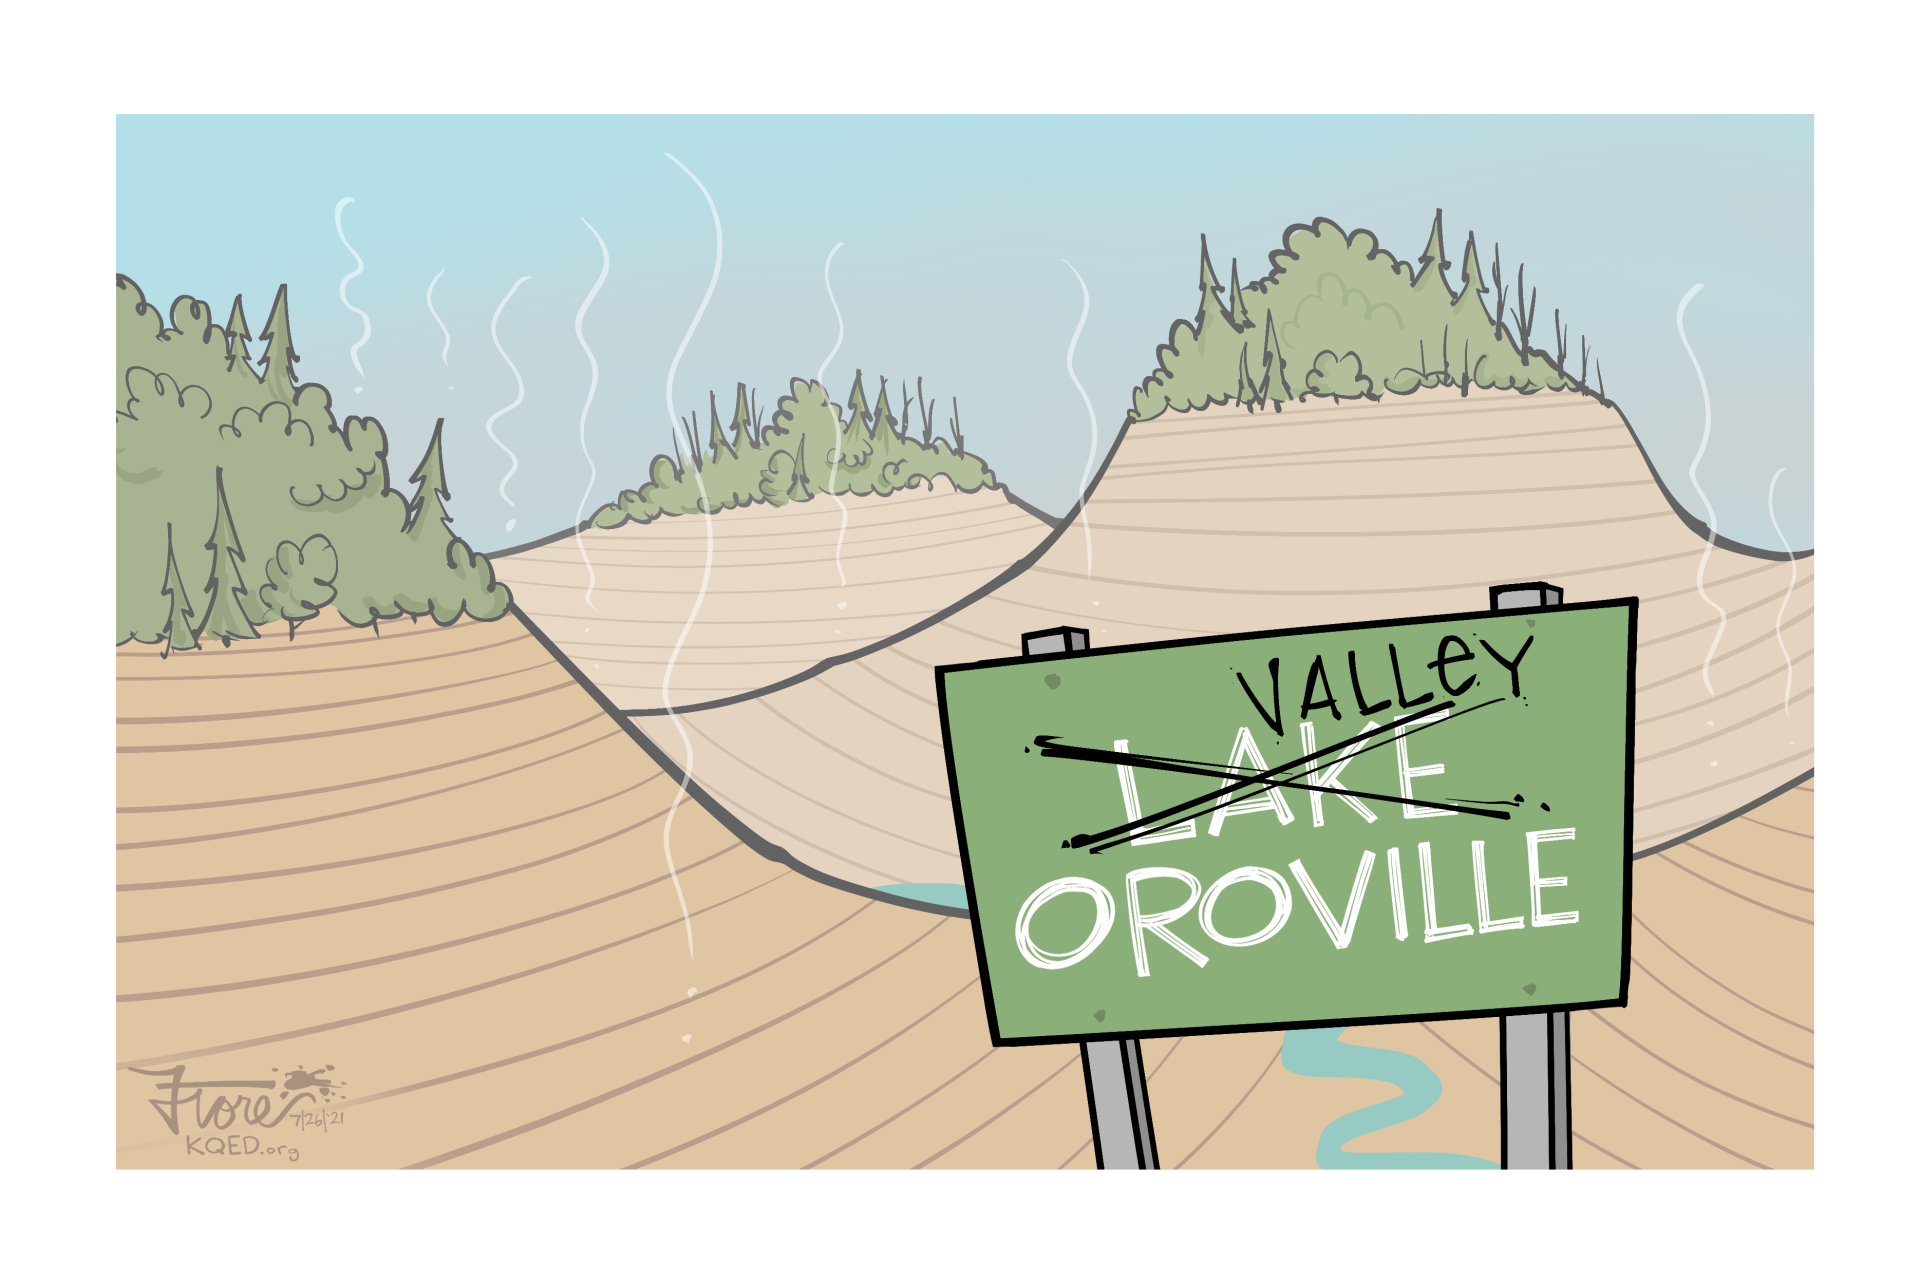 """A Mark Fiore cartoon showing a nearly empty Lake Oroville with a """"Lake Oroville"""" sign crossed out to say """"Valley Oroville."""""""